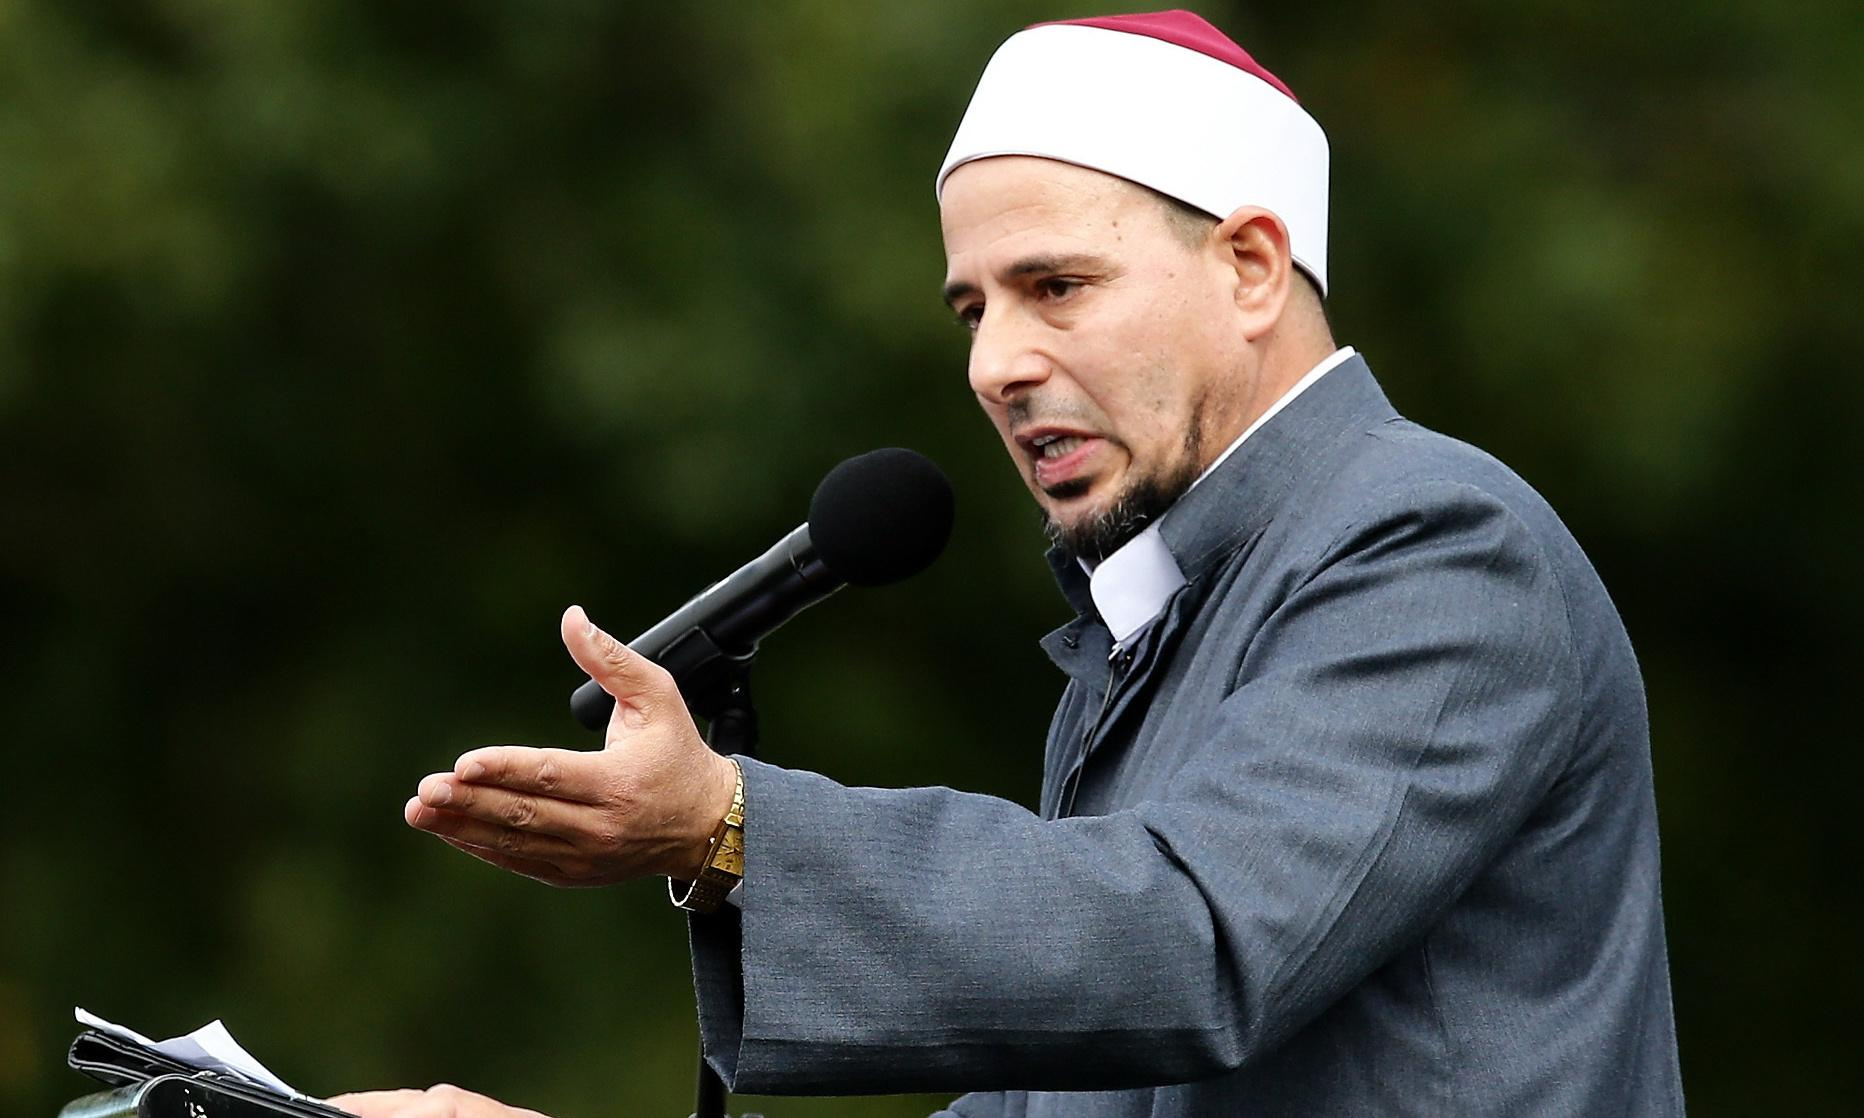 New Zealand attack: Al Noor mosque imam tells world leaders to fight hate speech